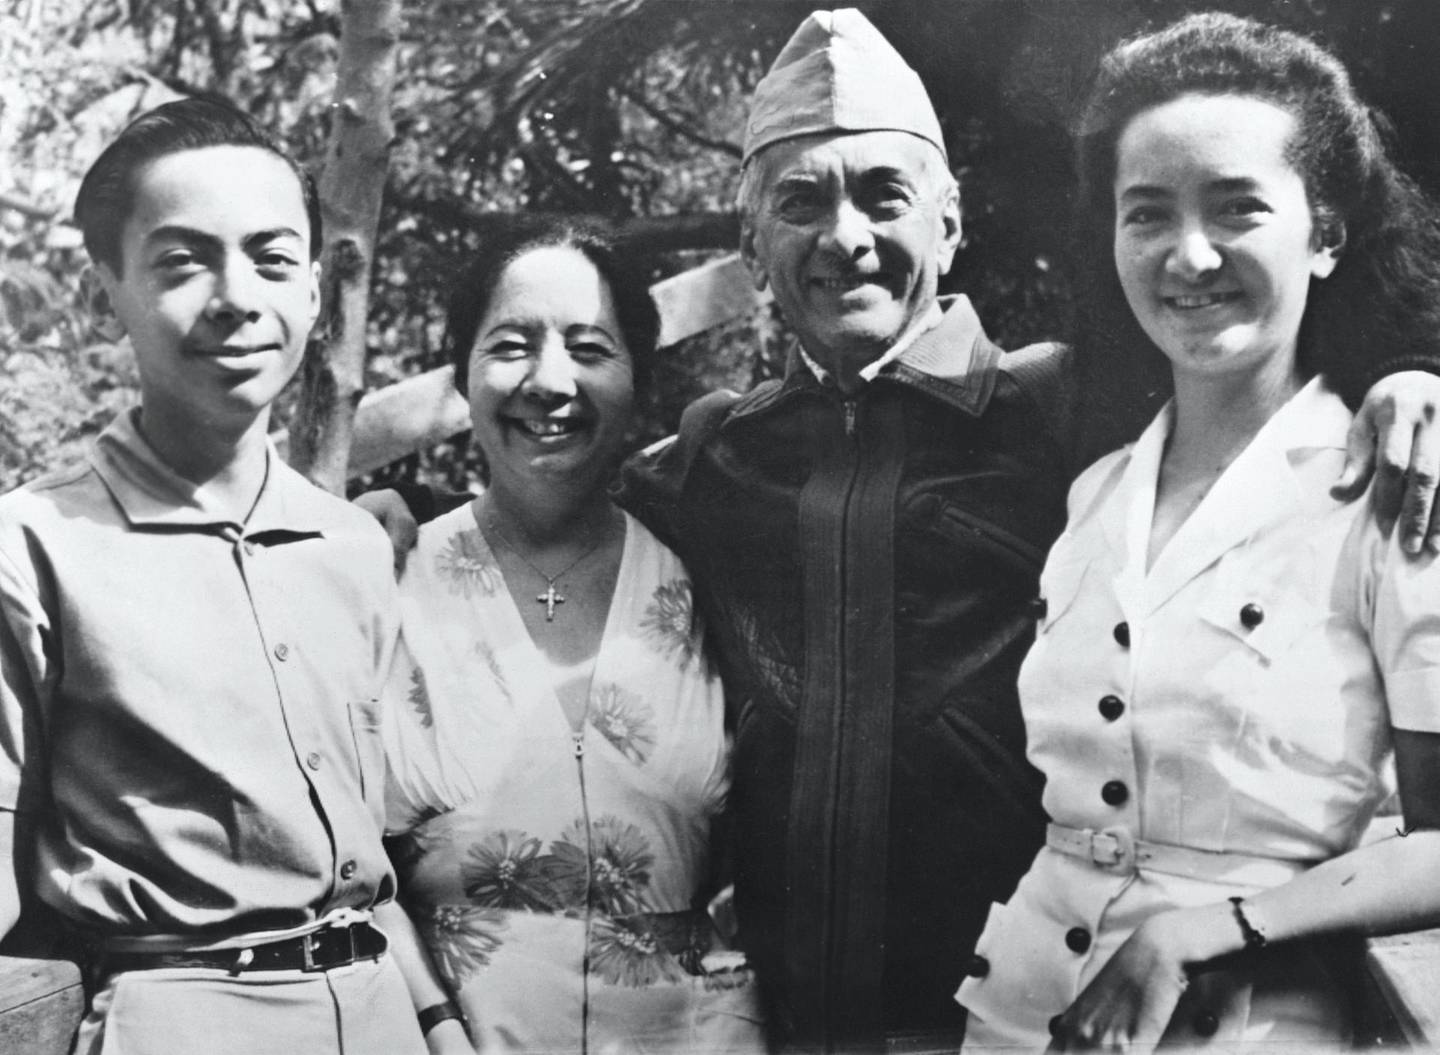 First president of the Philippines Manuel Quezon stands with his son, Manuel Jr., his wife, Dona, and his daughter, Maria. (Photo by © Hulton-Deutsch Collection/CORBIS/Corbis via Getty Images)